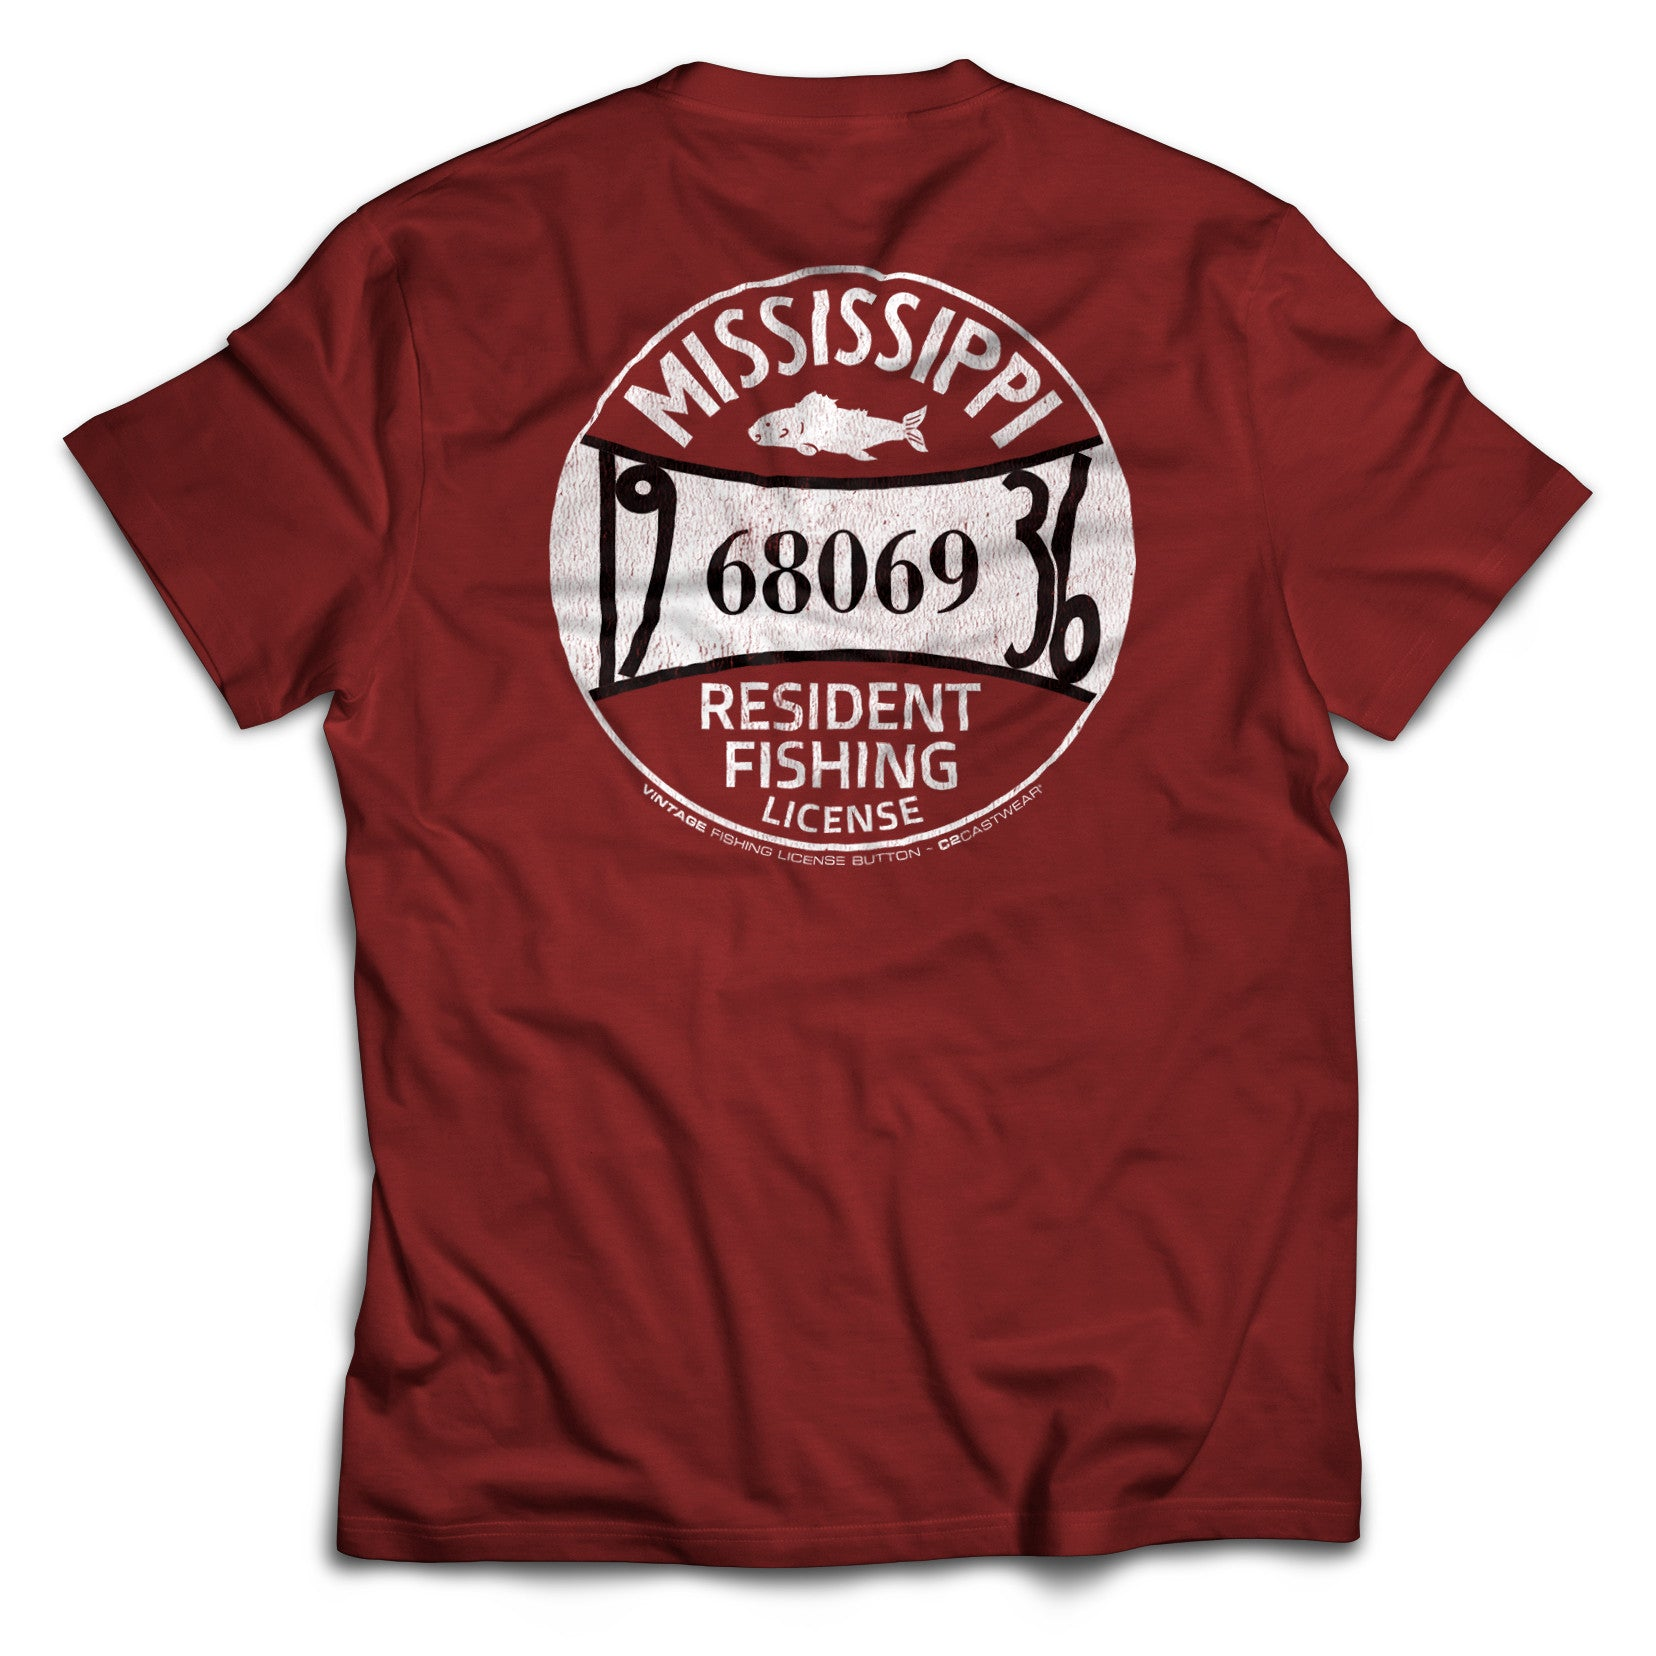 1937 ms fishing license t shirt c2 castwear for Ms fishing license